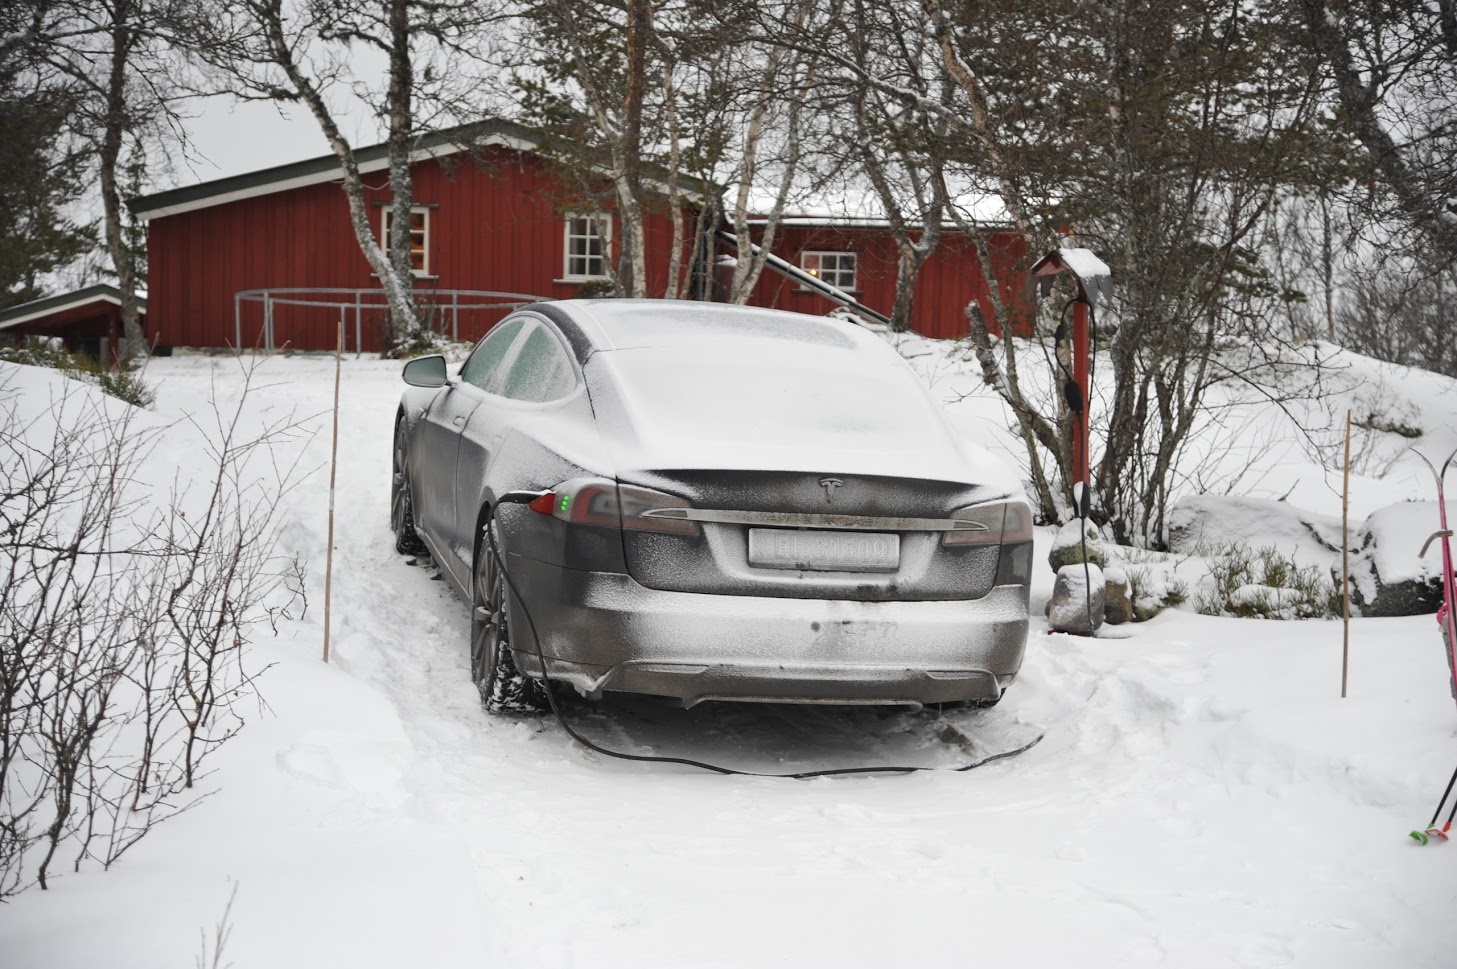 I Drove My Rwd Model S Thousands Of Kilometers On Snow And Ice Including A 100 Km Drive Black The Only Time Got Stuck Was Very Steep